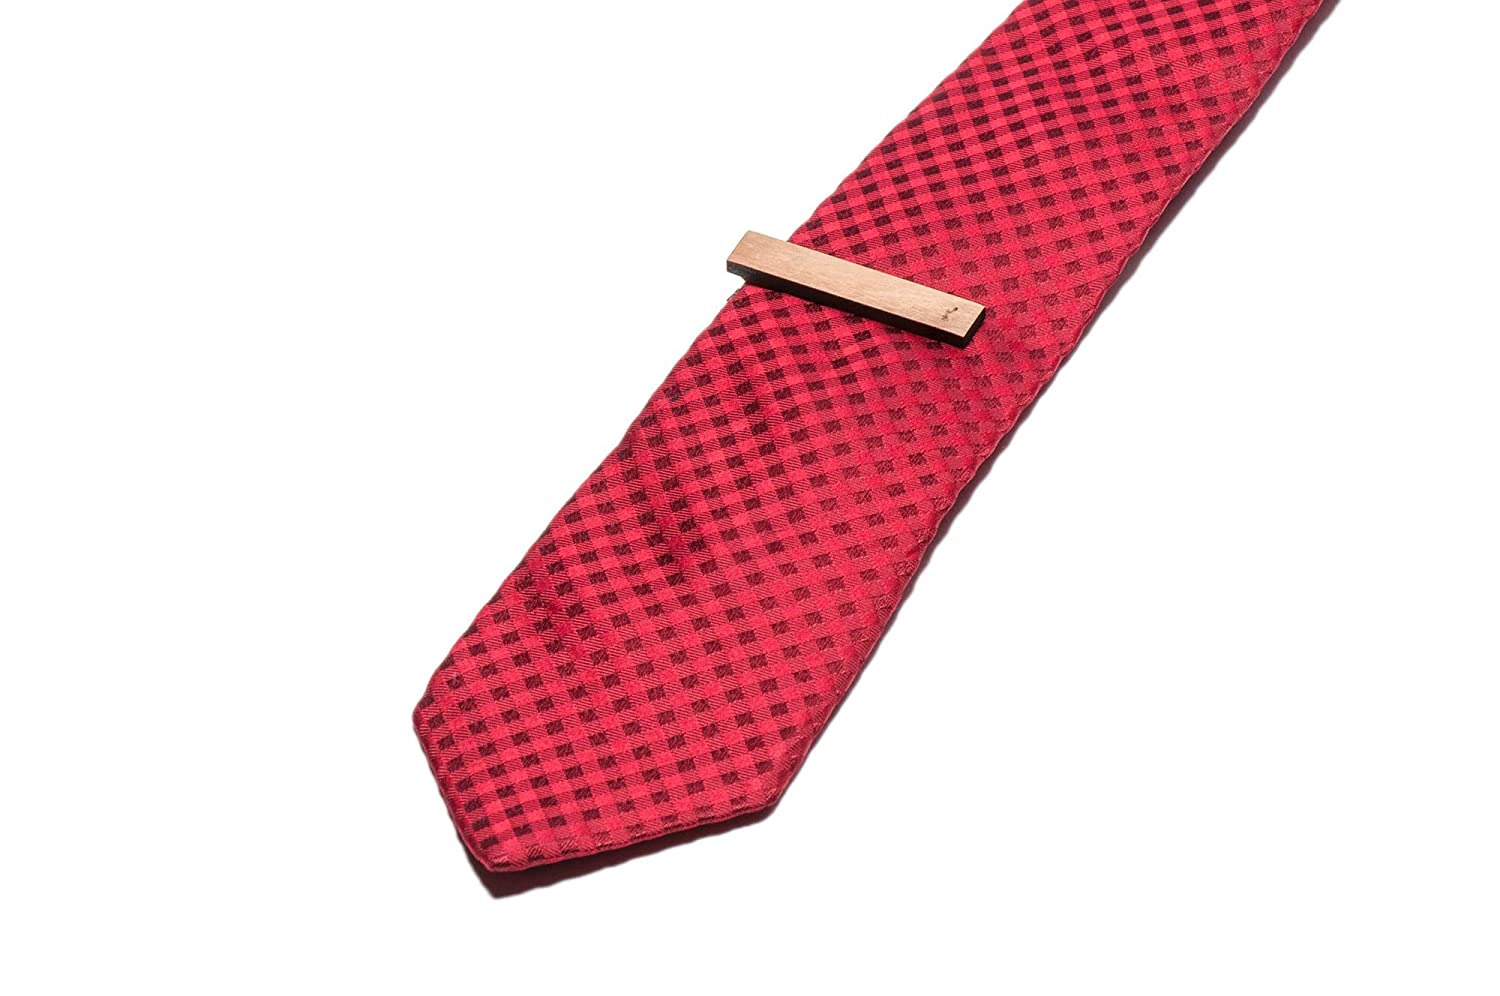 Wooden Accessories Company Wooden Tie Clips with Laser Engraved First Telephone Design Cherry Wood Tie Bar Engraved in The USA